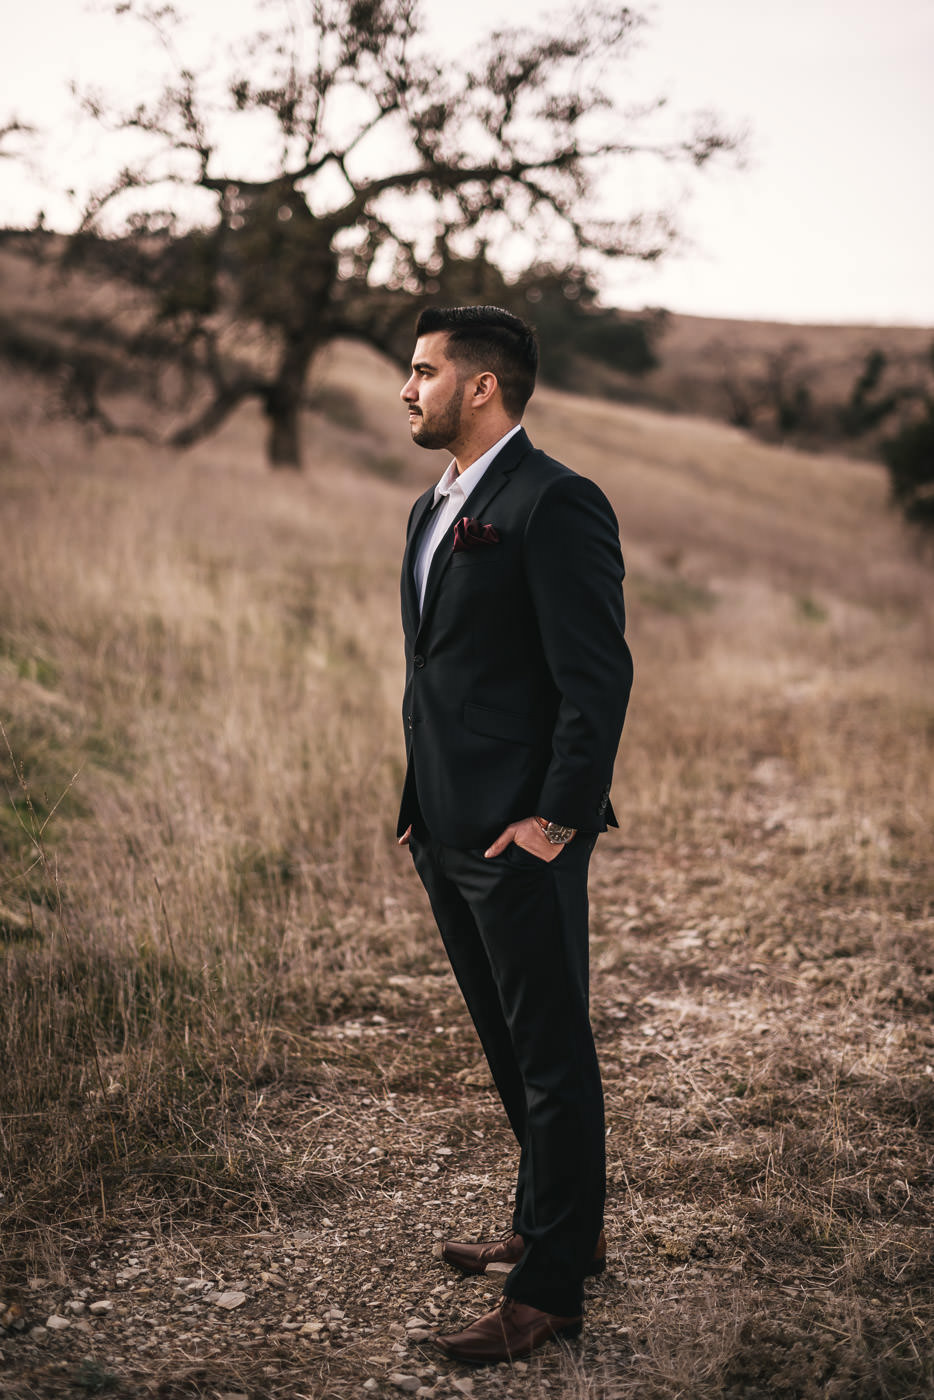 Romantic portrait of a groom at his engagement session.